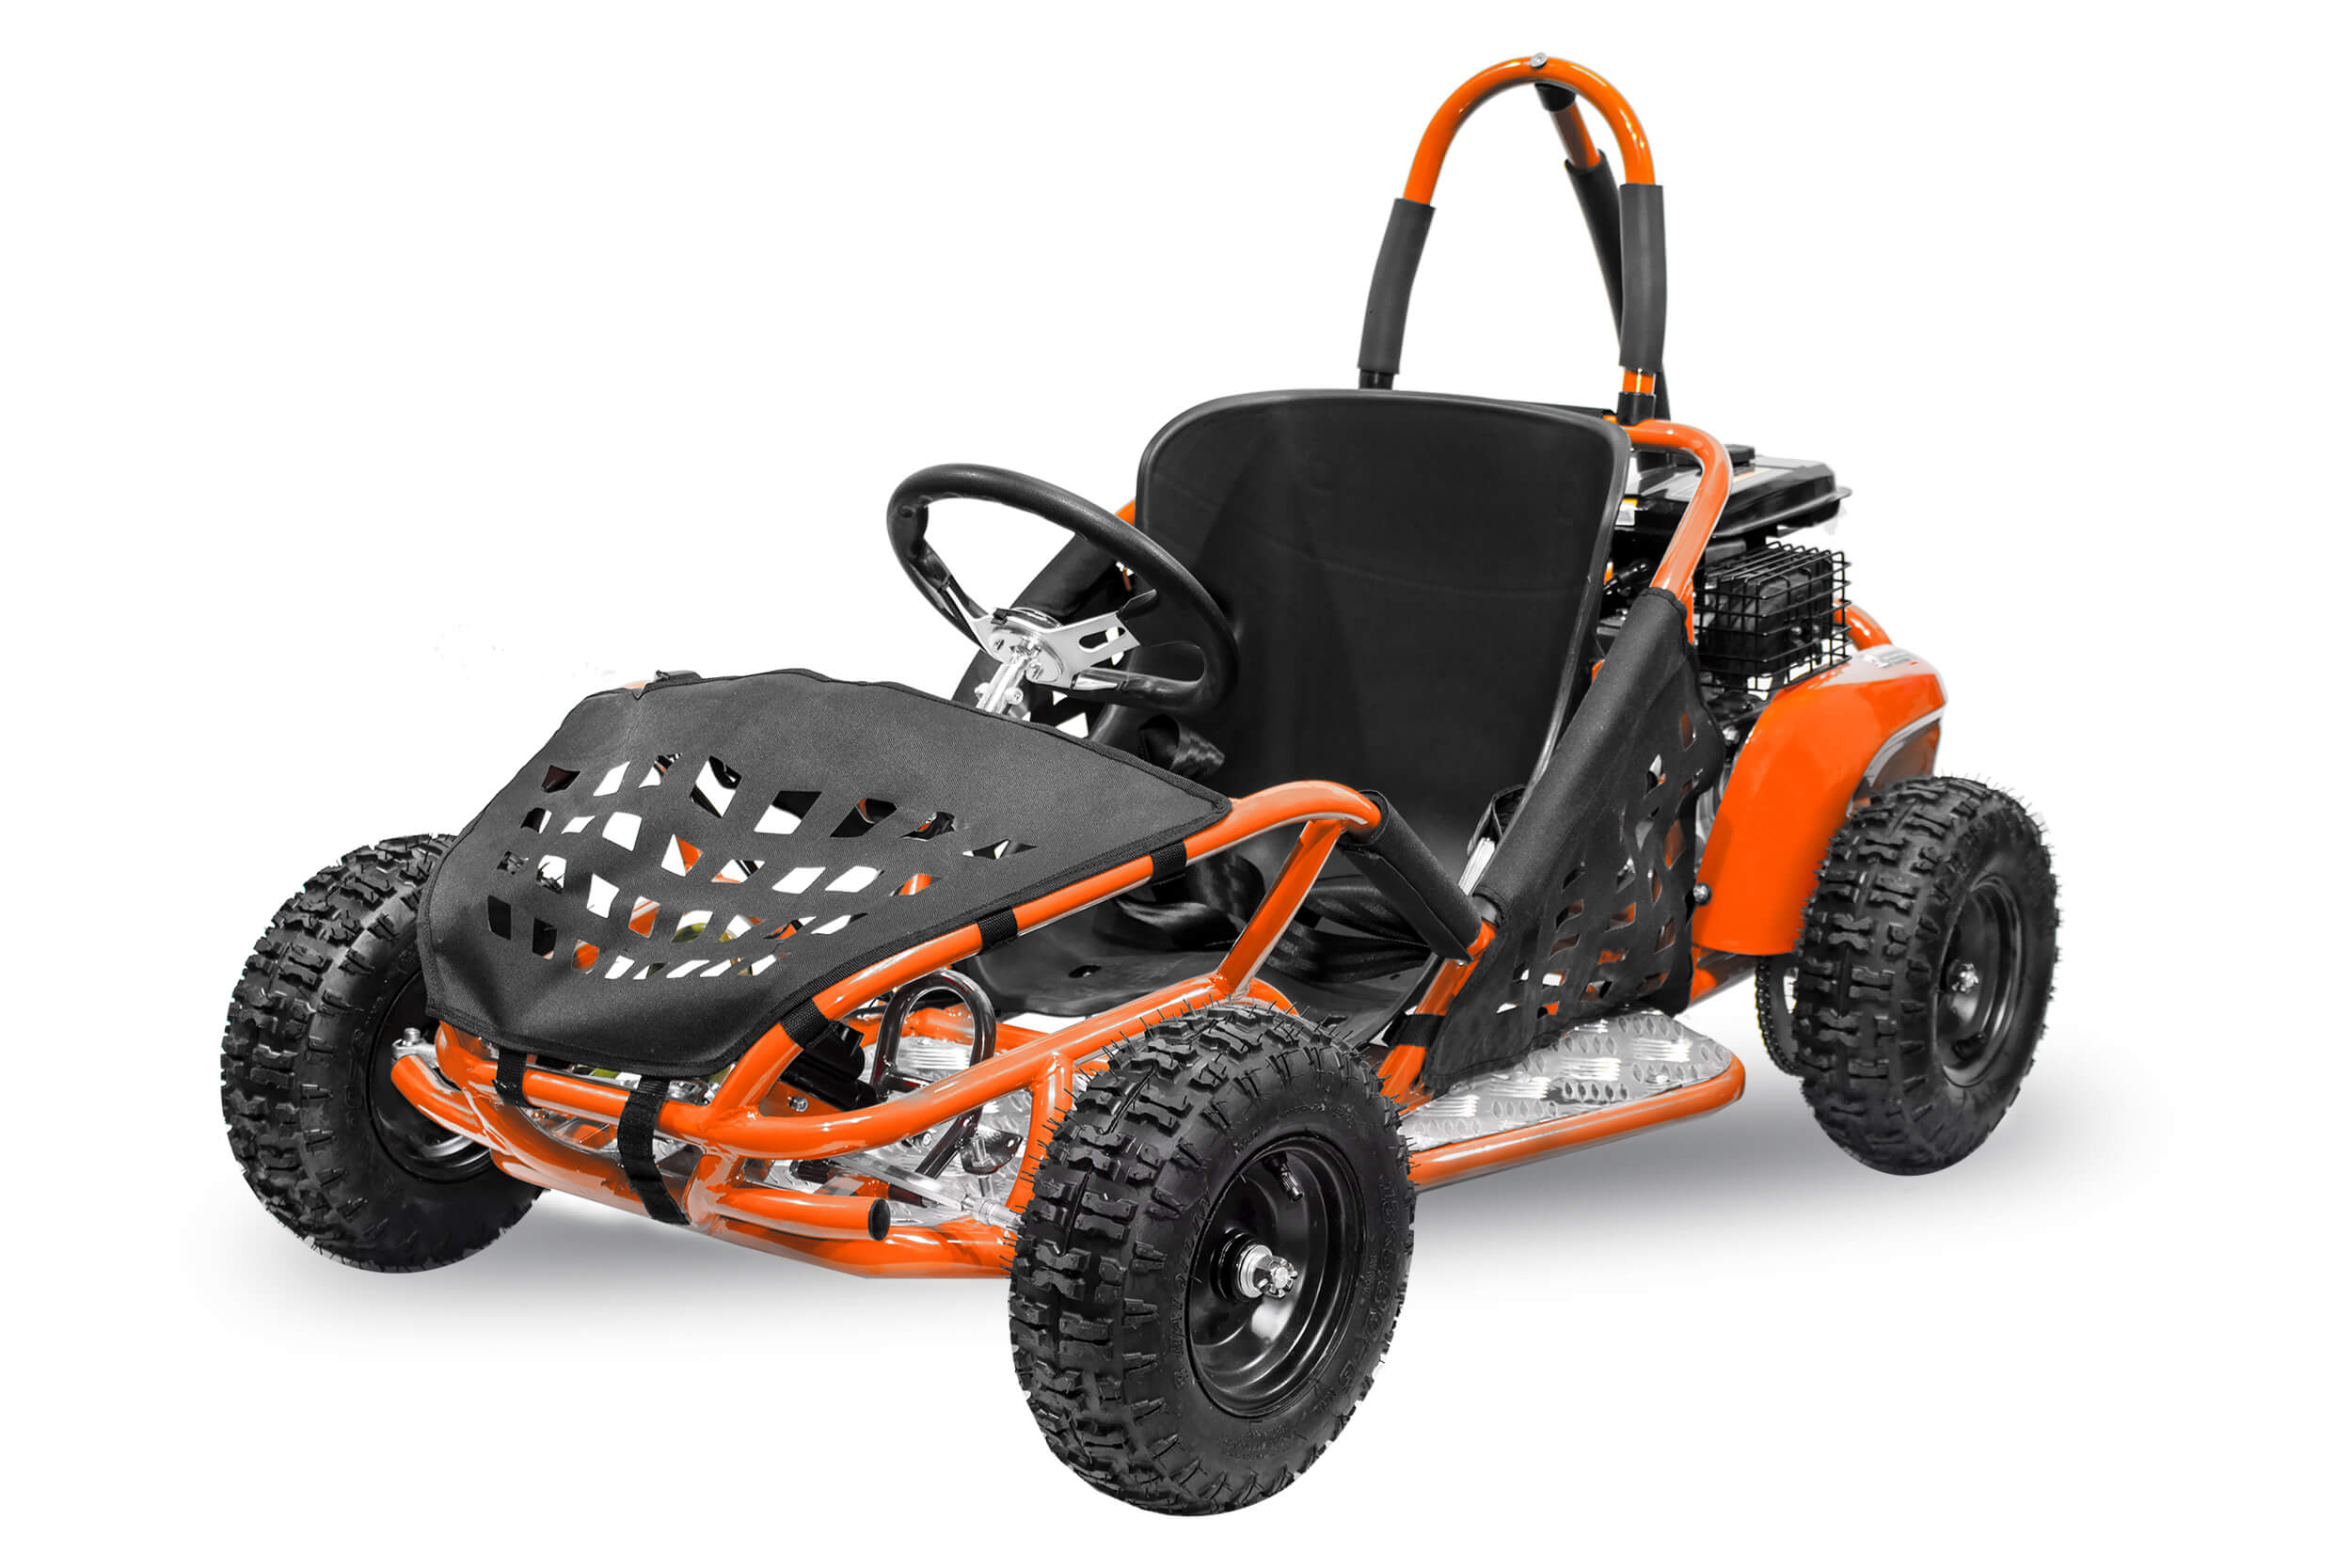 GoKid 80cc Petrol Kids Buggy with Lifan Engine